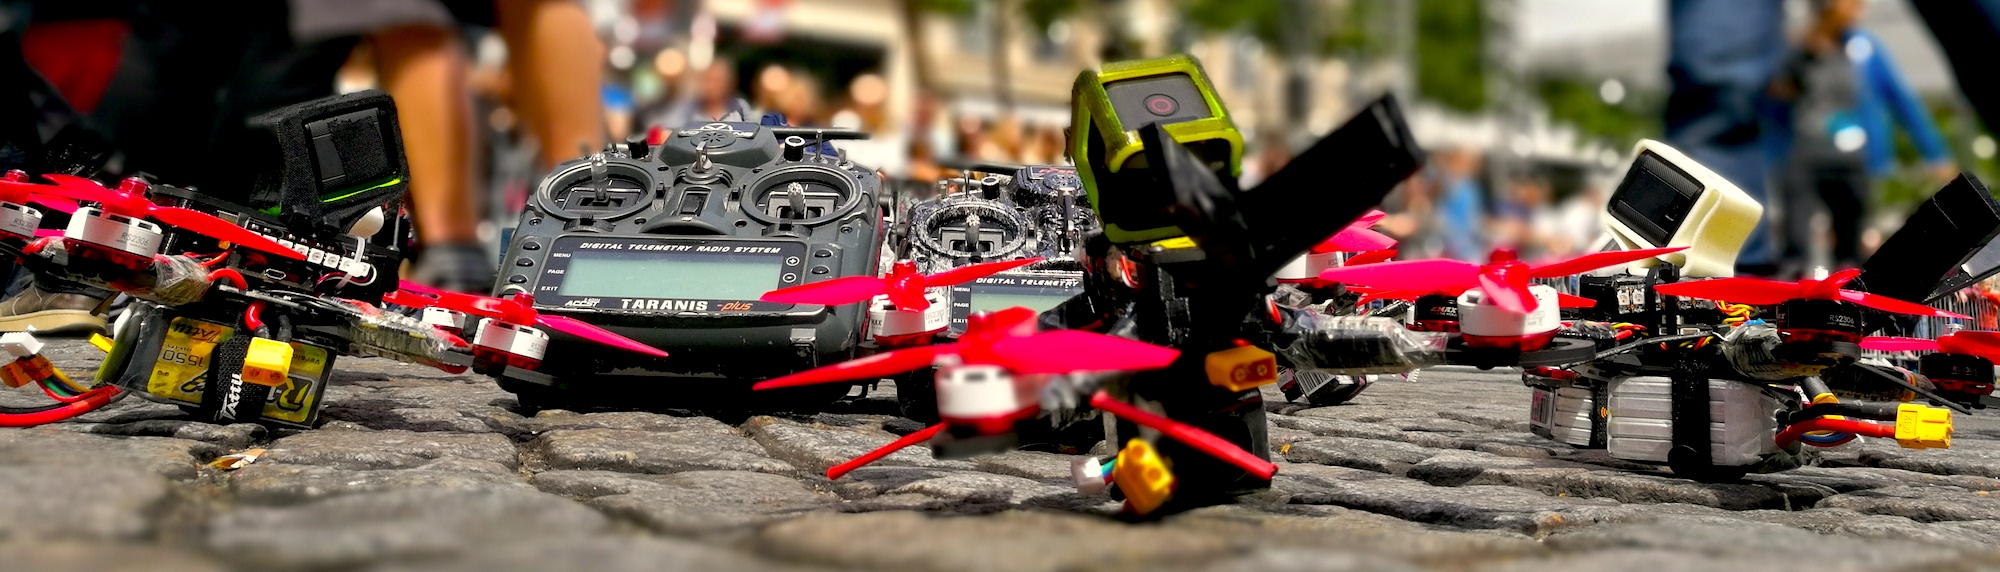 Photo drone racer FPV